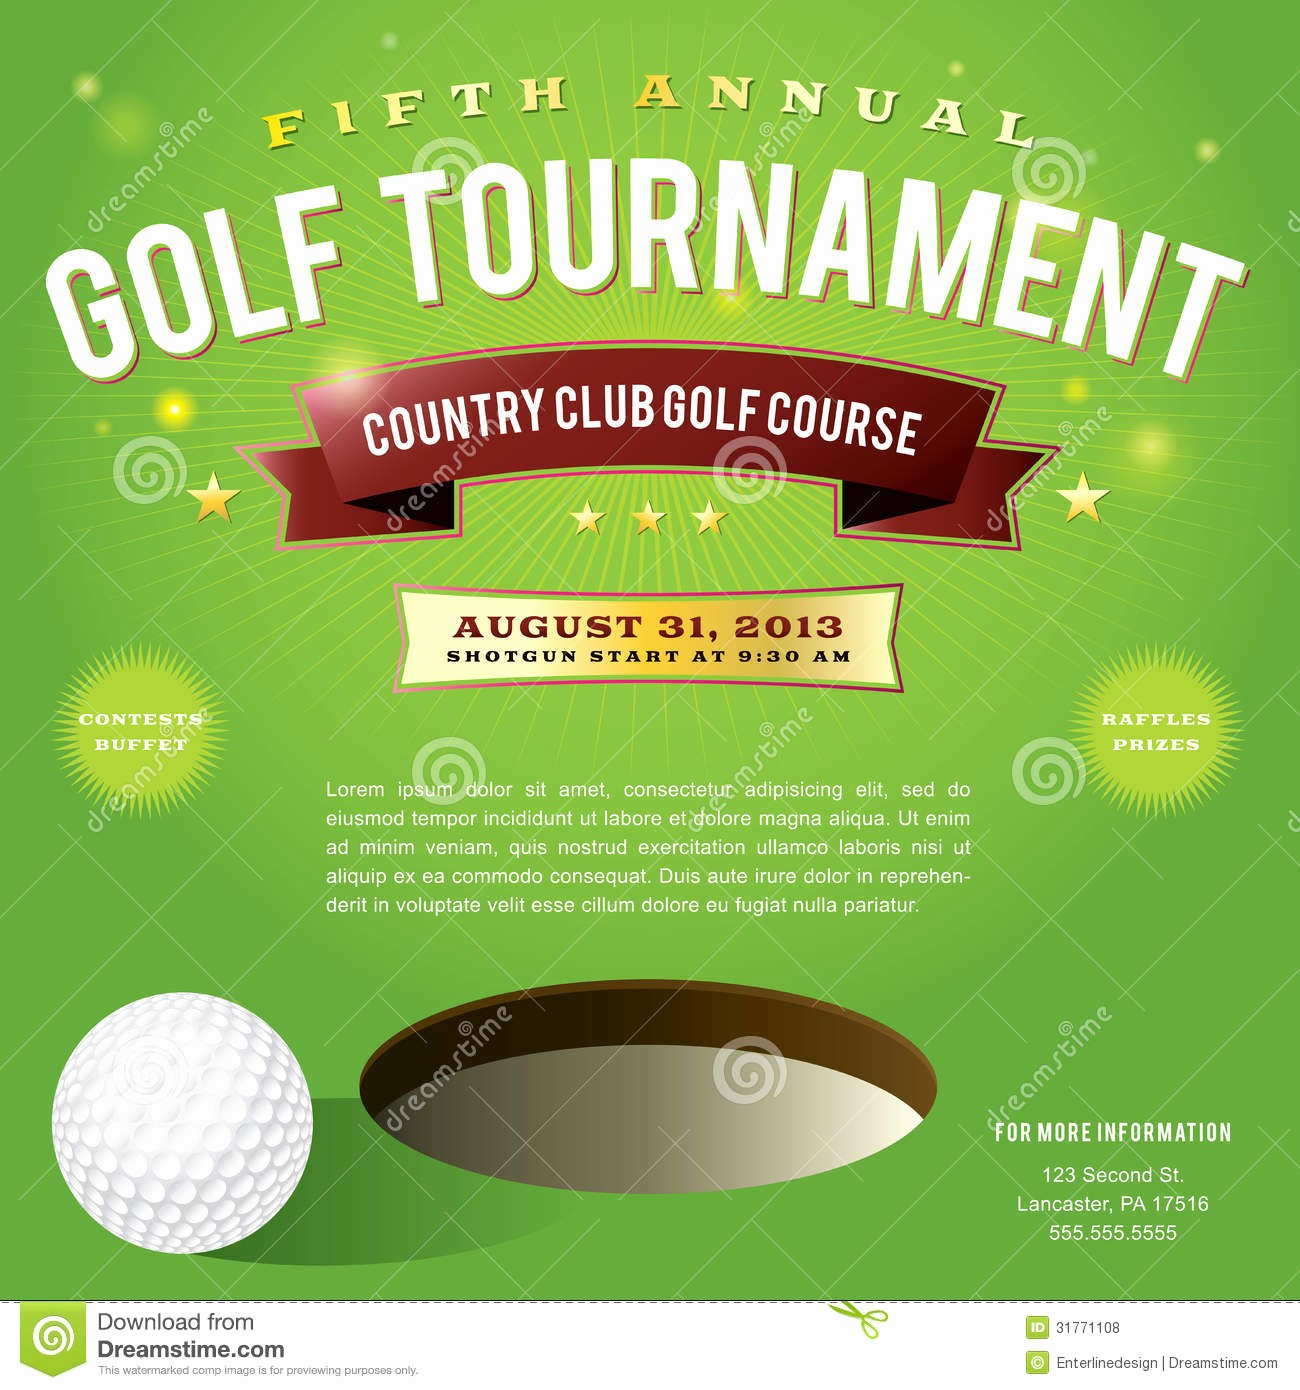 Golf tournament Invitation Template Free Luxury Golf Invitation Templates